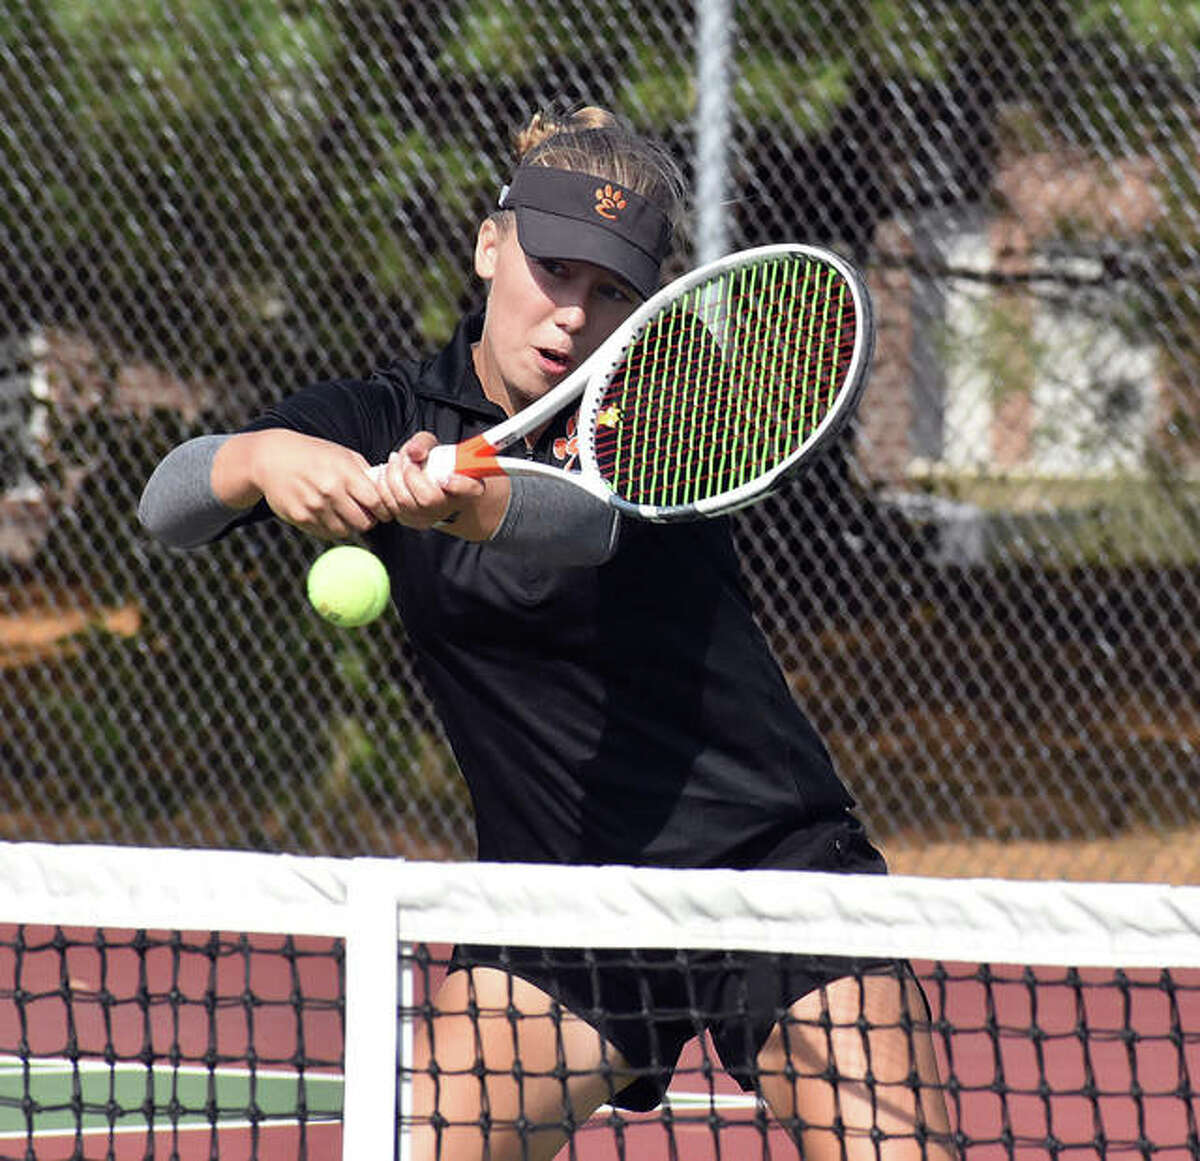 Edwardsville junior Hannah Colbert returns a shot from in front of the net during her doubles championship match in the Class 2A Edwardsville Sectional on Saturday.